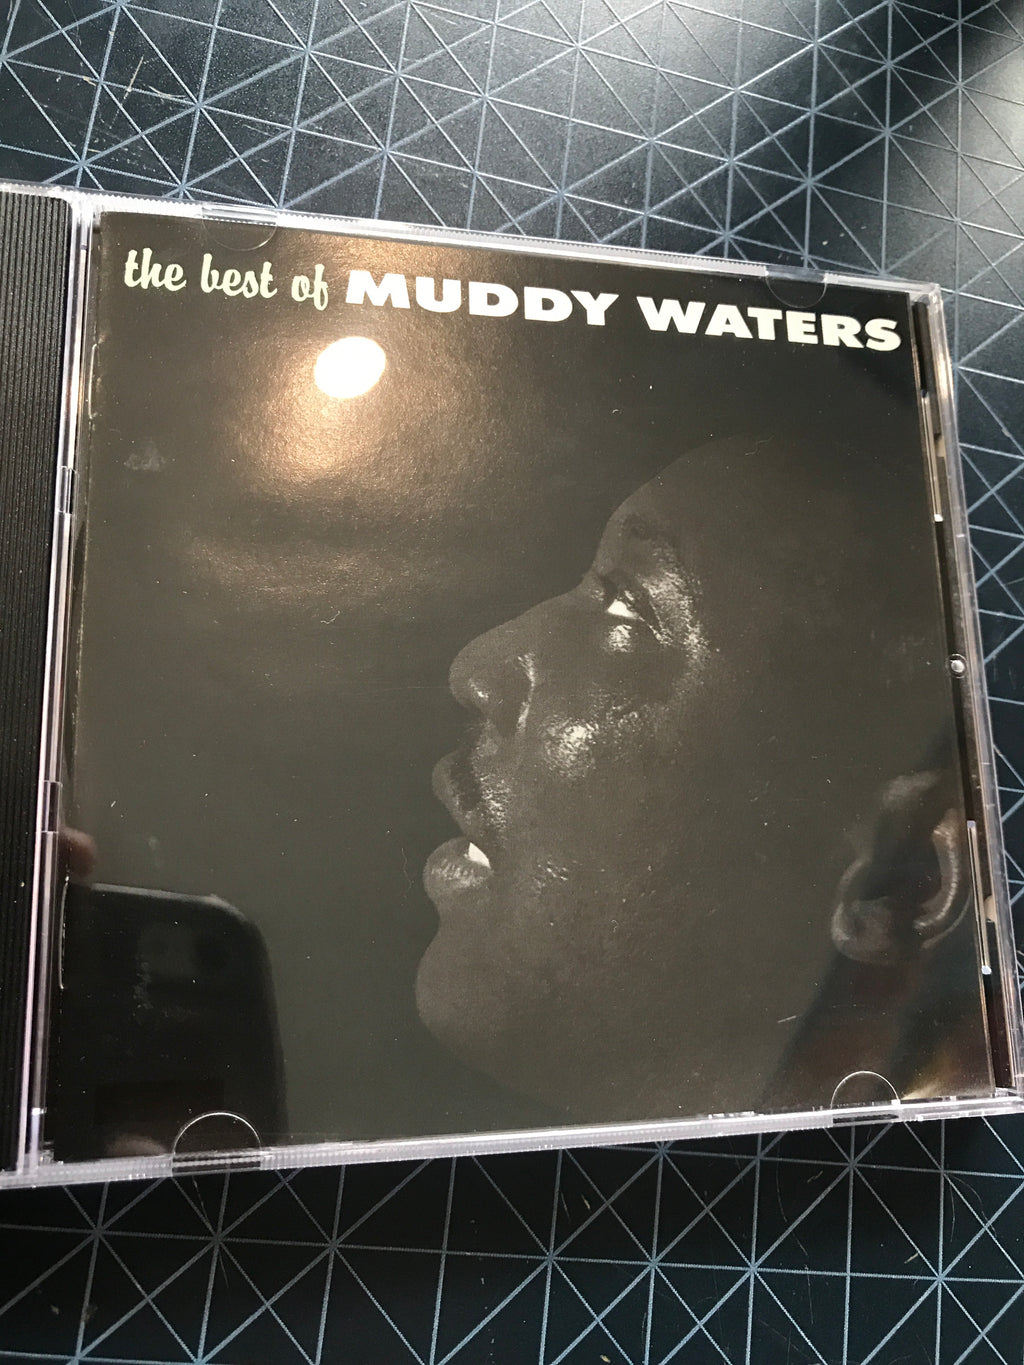 Muddy Waters - The Best Of - Used CD